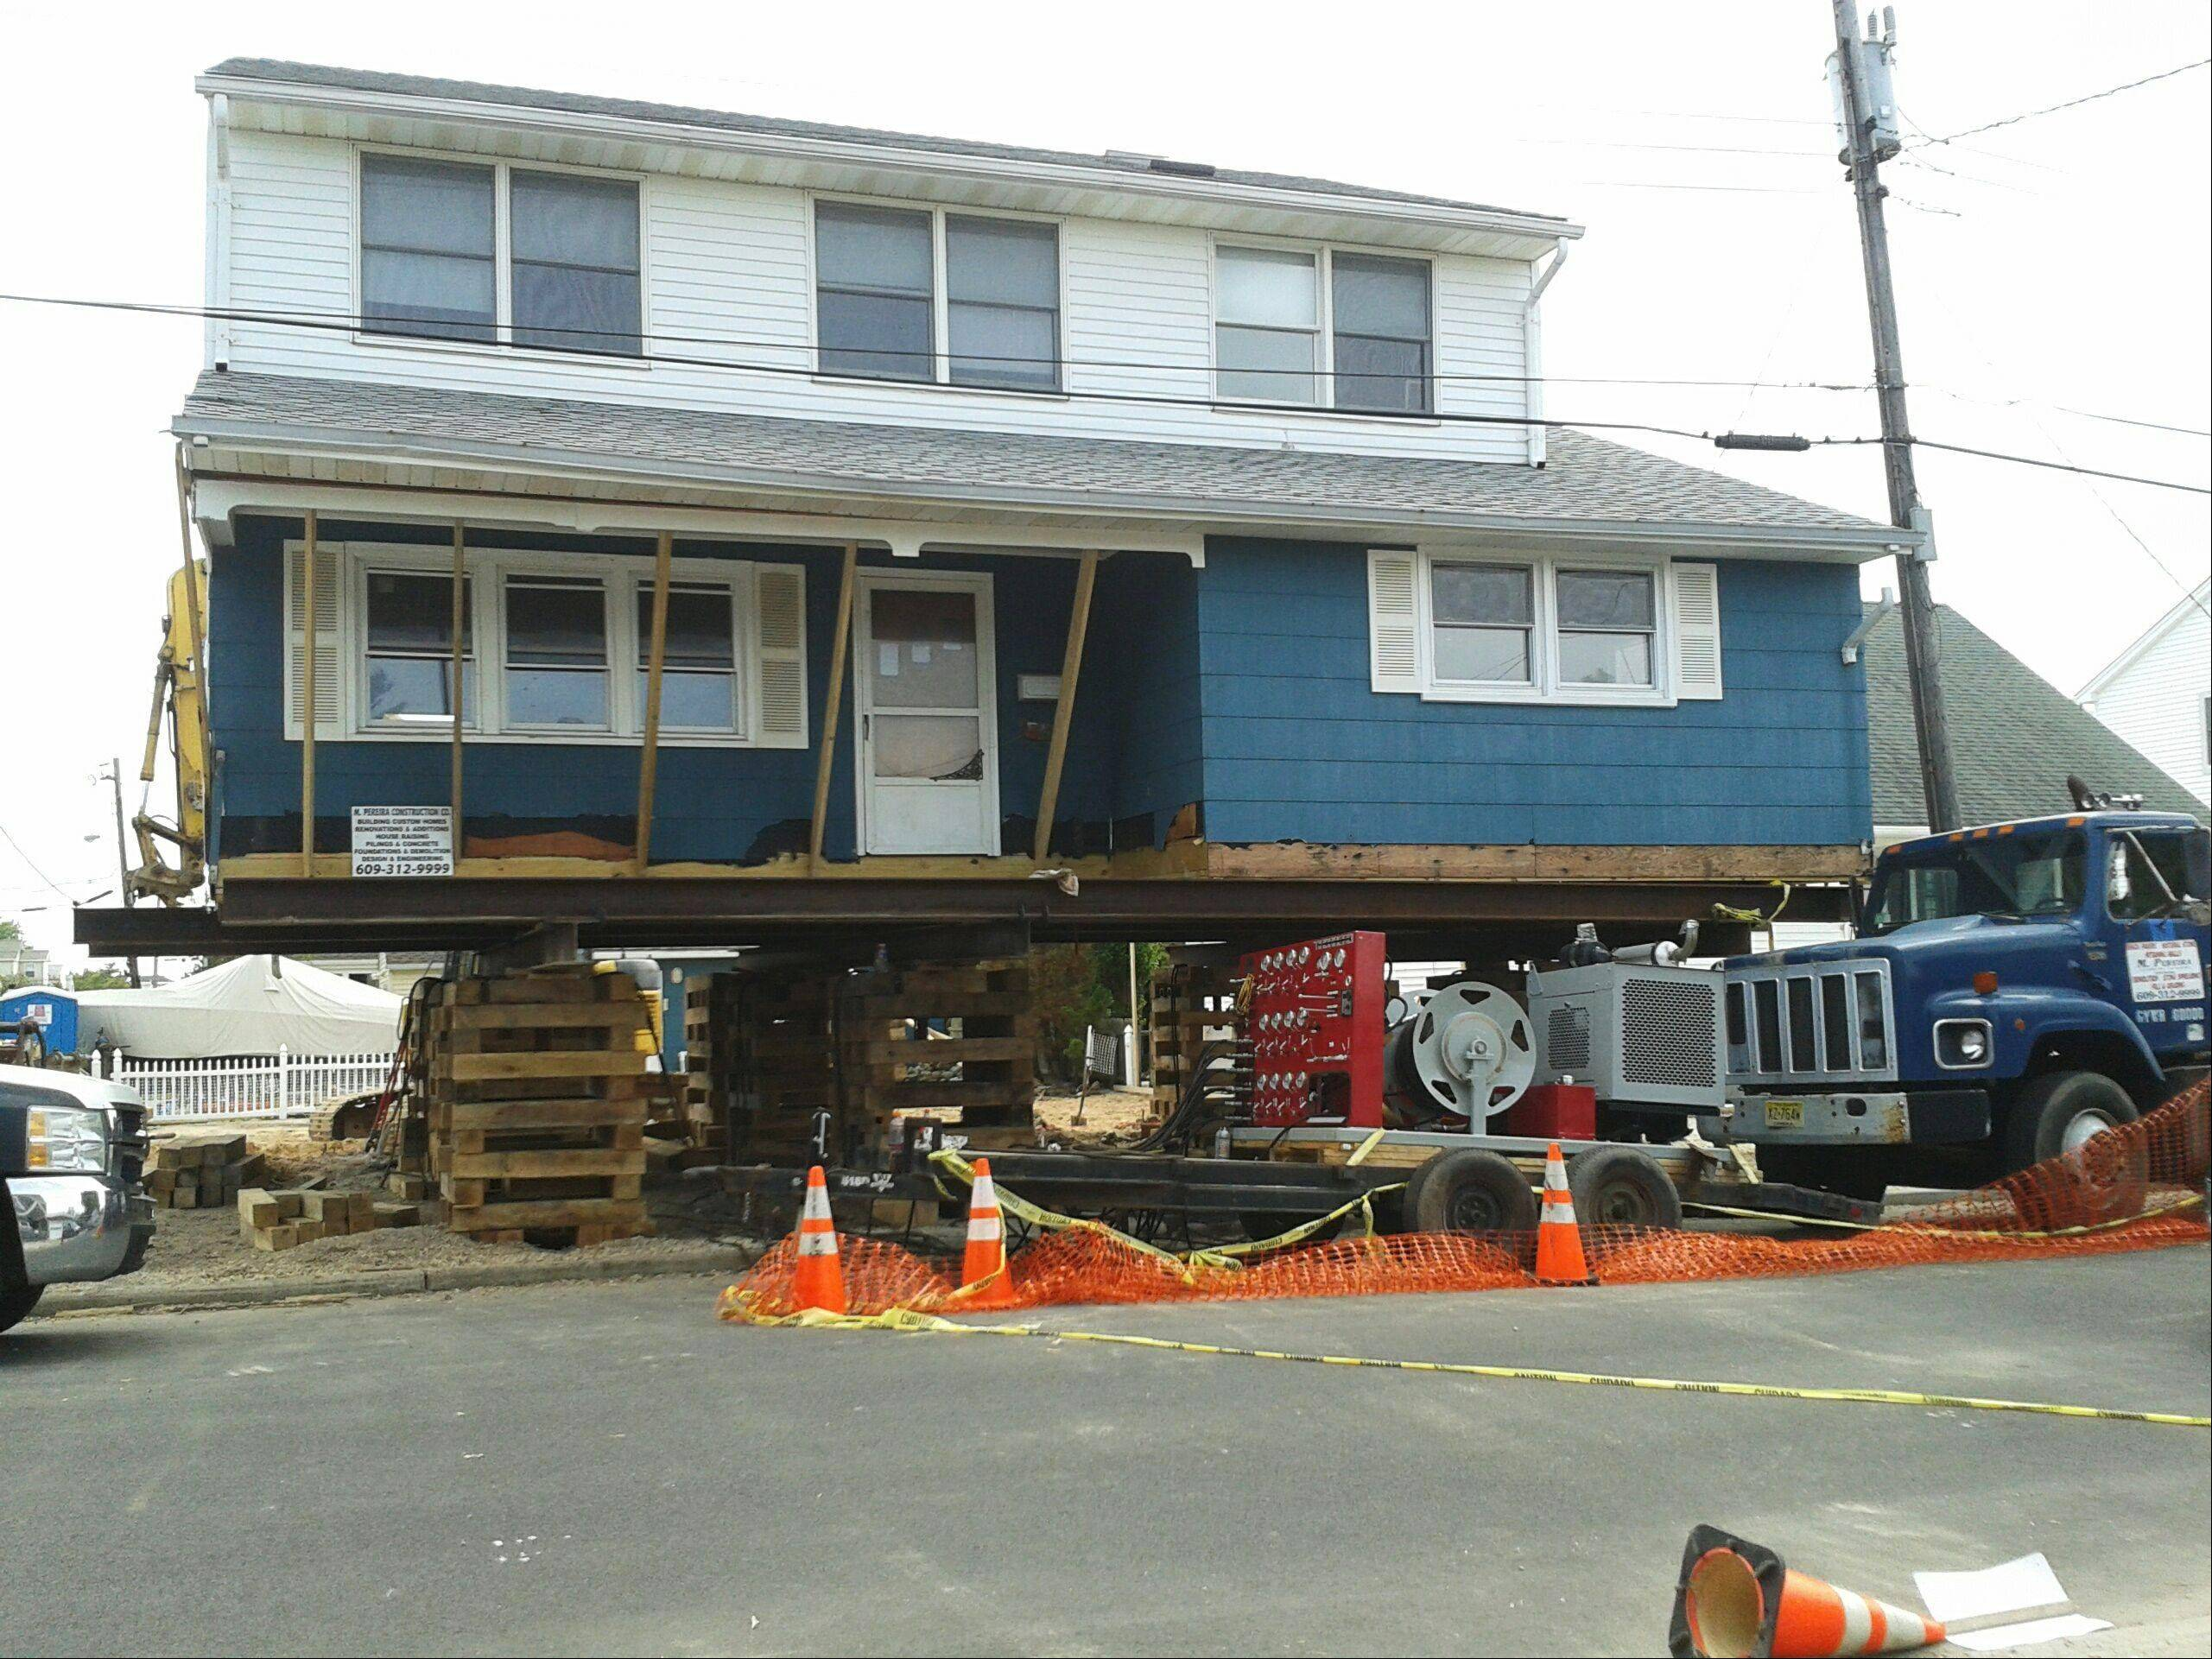 John Paynter's vacation home in Long Beach Island, N.J., was raised after tropical storm Sandy and now stands 13 feet higher than it did before.